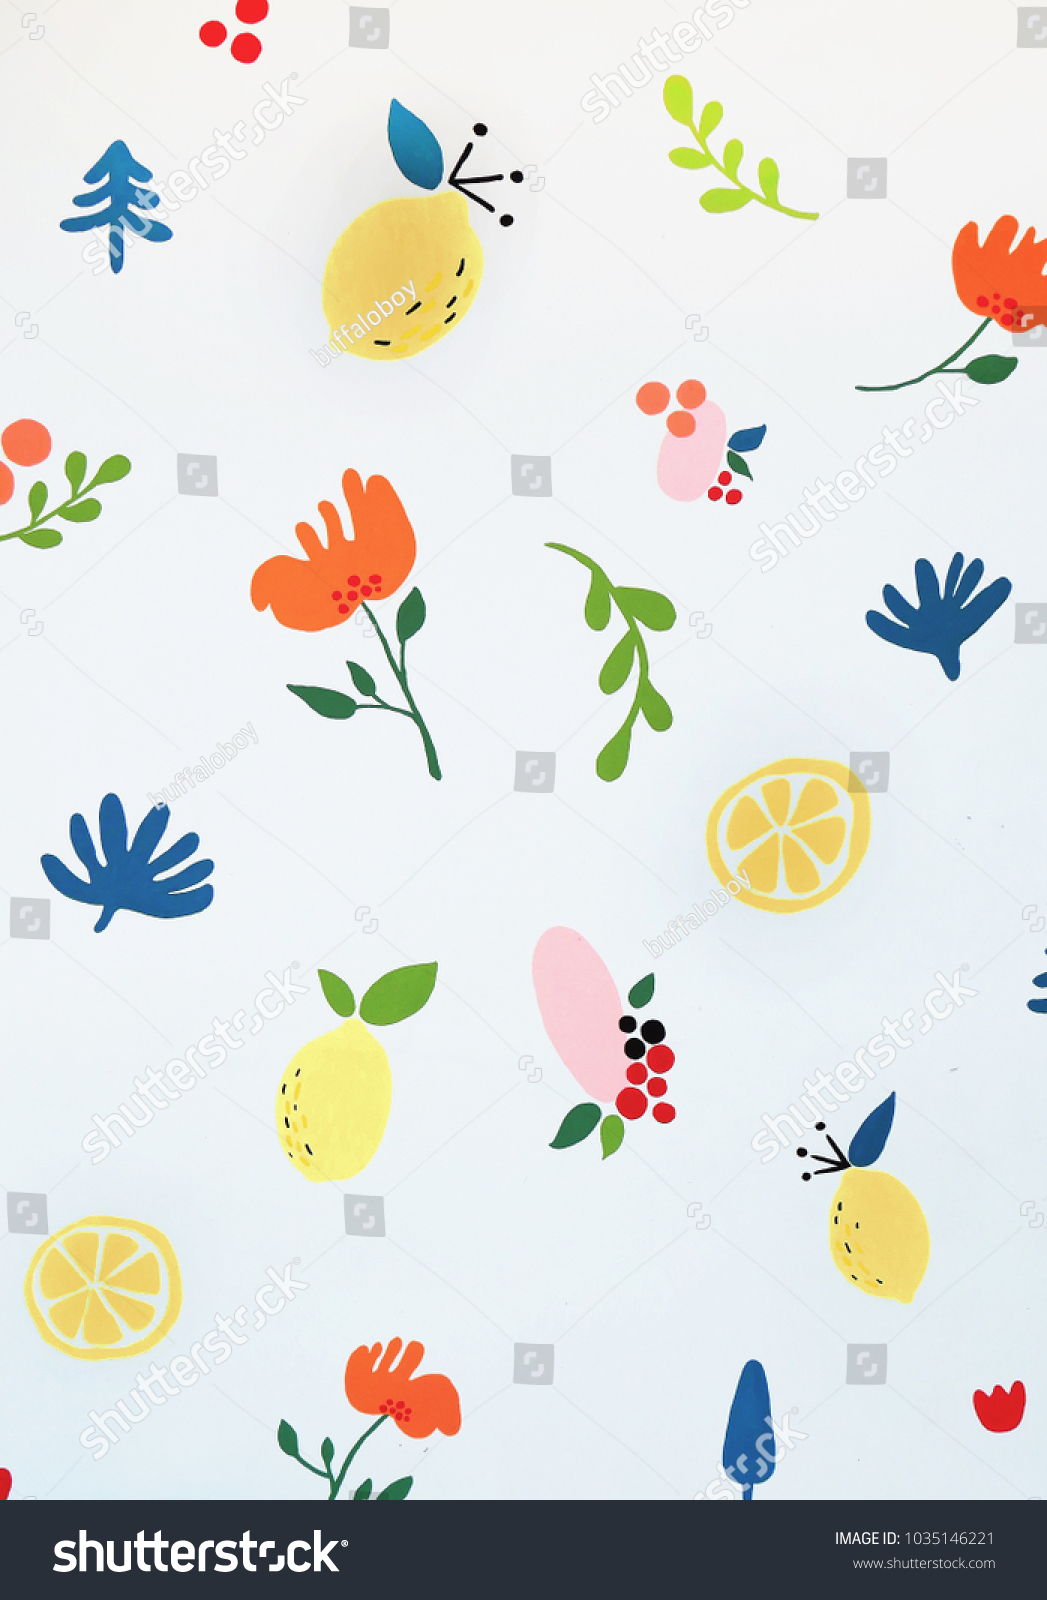 Water Colour Cute Wallpaper For Kid Hand Draw Painting Flower Little Grass